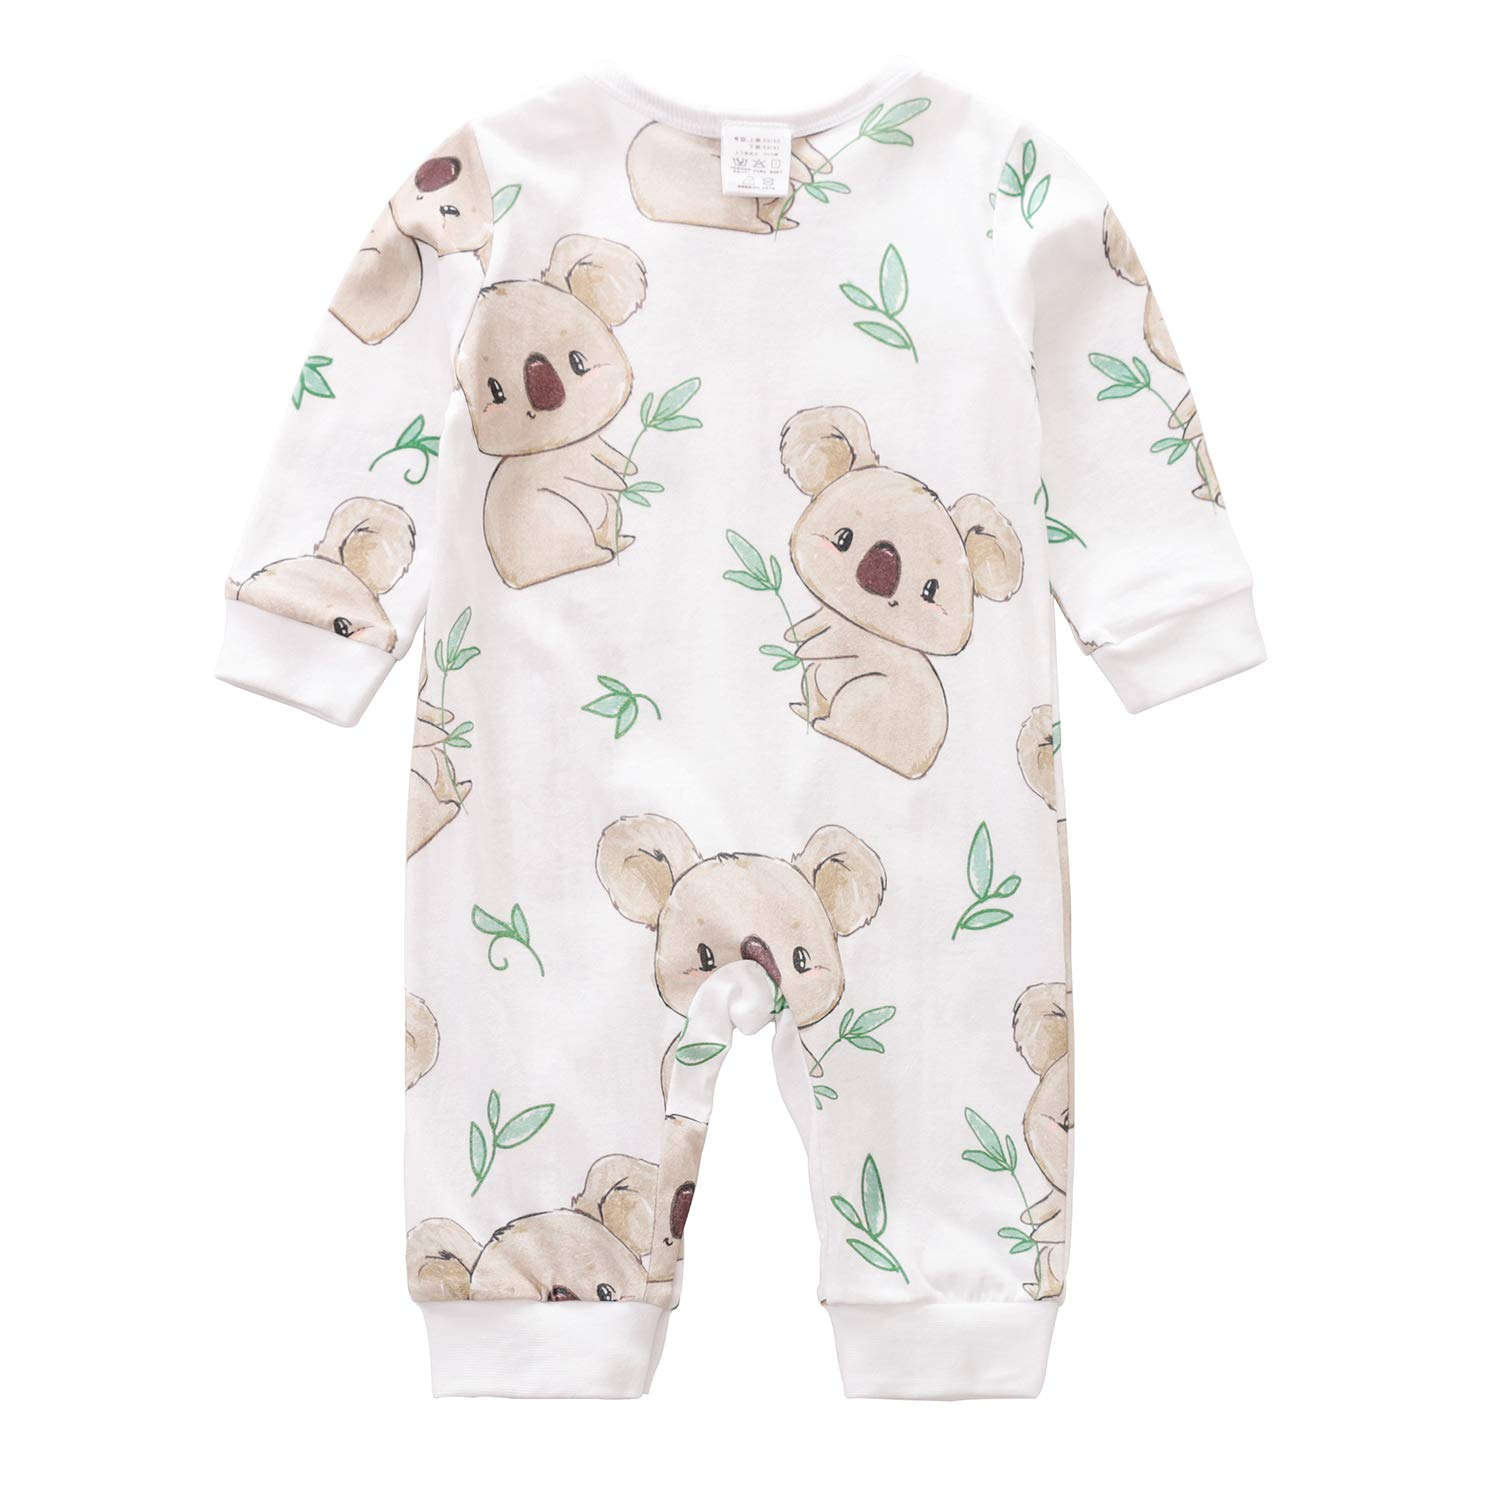 Beal Shopping Newborn Baby Boy Girl Romper Small Toddler Cute Koala Print Summer Long Sleeve Jumpsuit Clothes